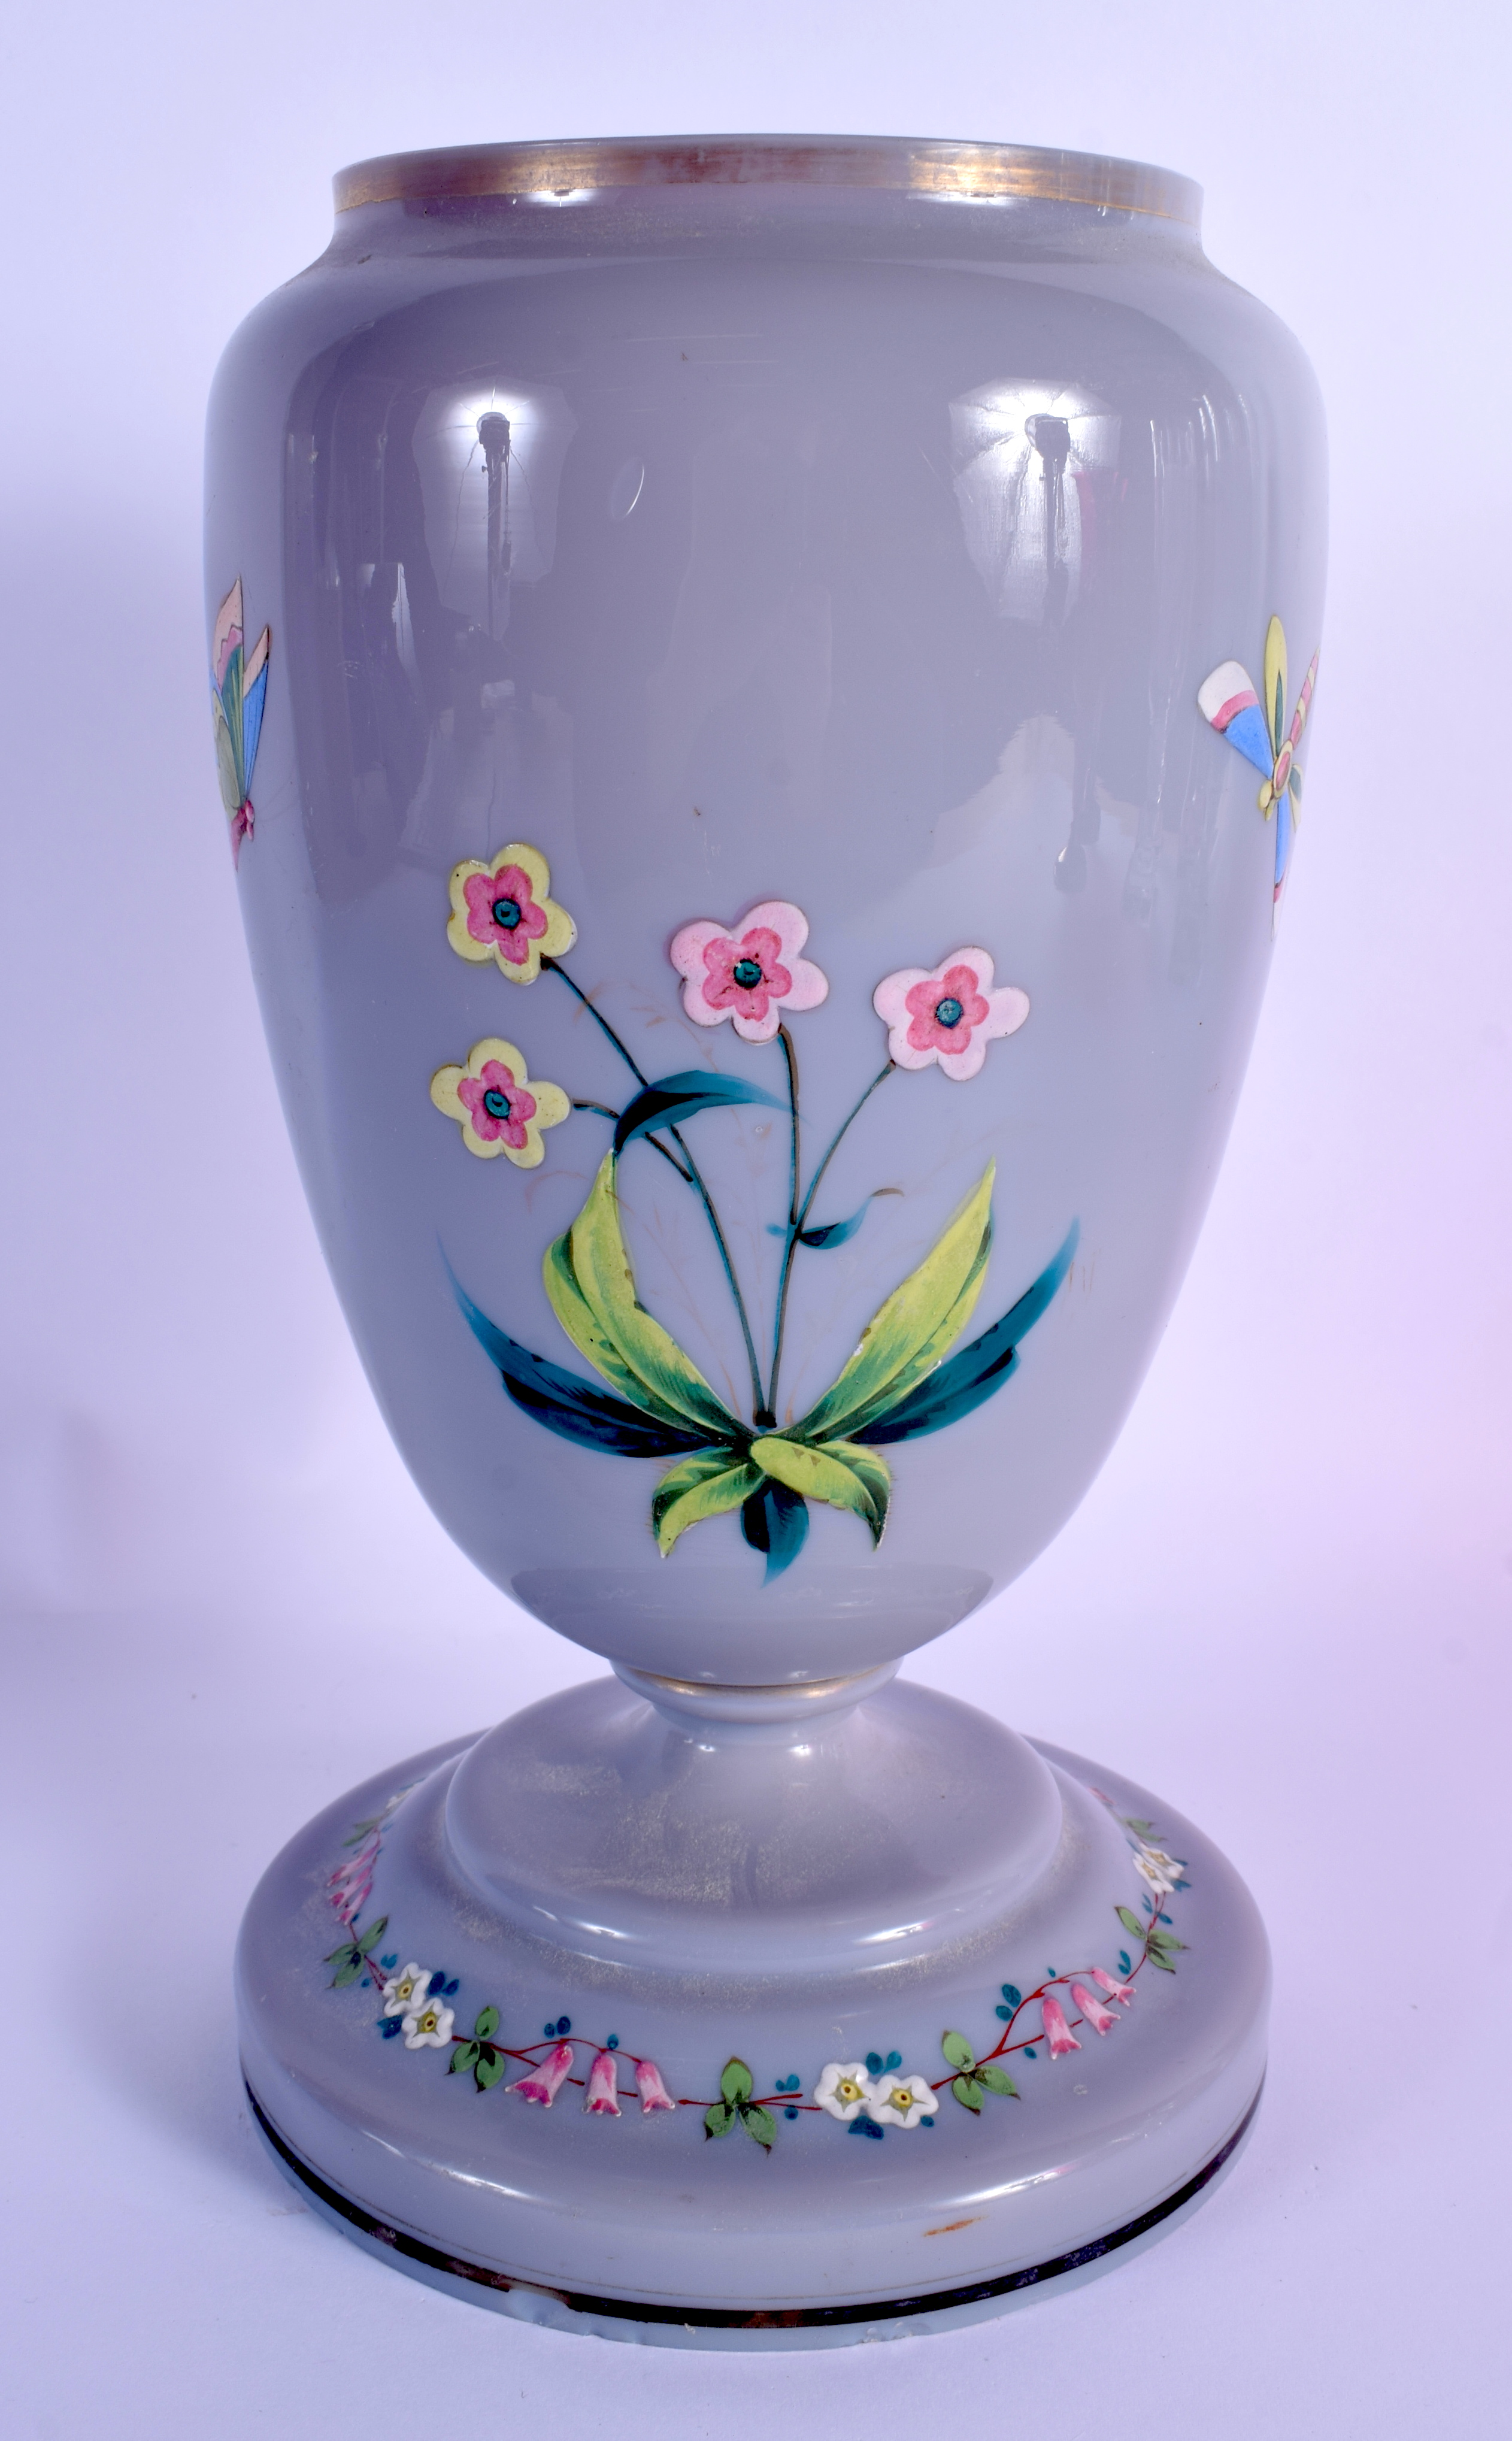 A LATE VICTORIAN/EDWARDIAN ENAMELLED GREY PURPLE GLASS OIL LAMP BASE decorated with a bird. 27 cm hi - Image 2 of 3